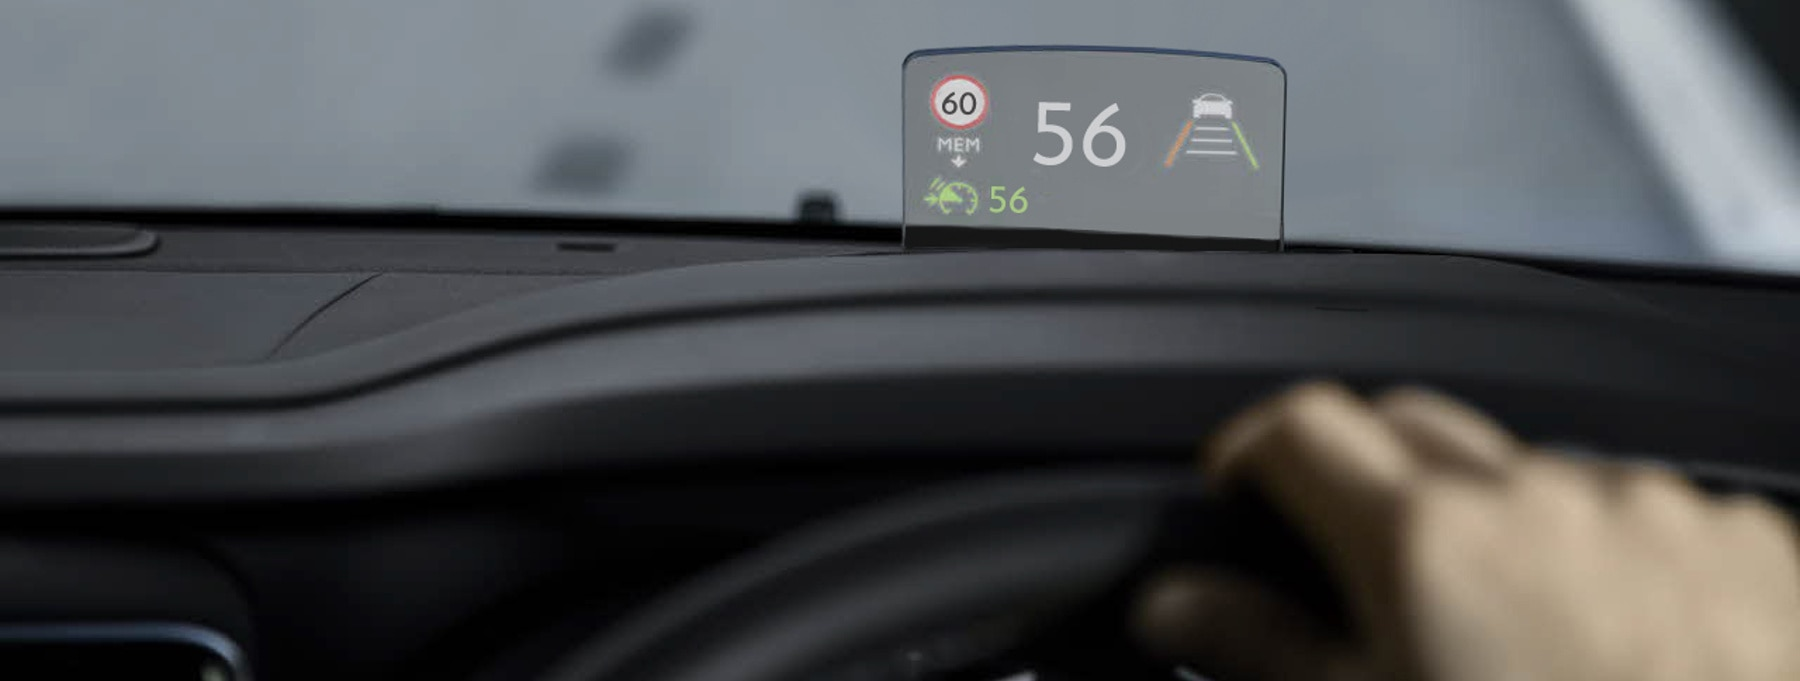 1800x681 Head Up Display